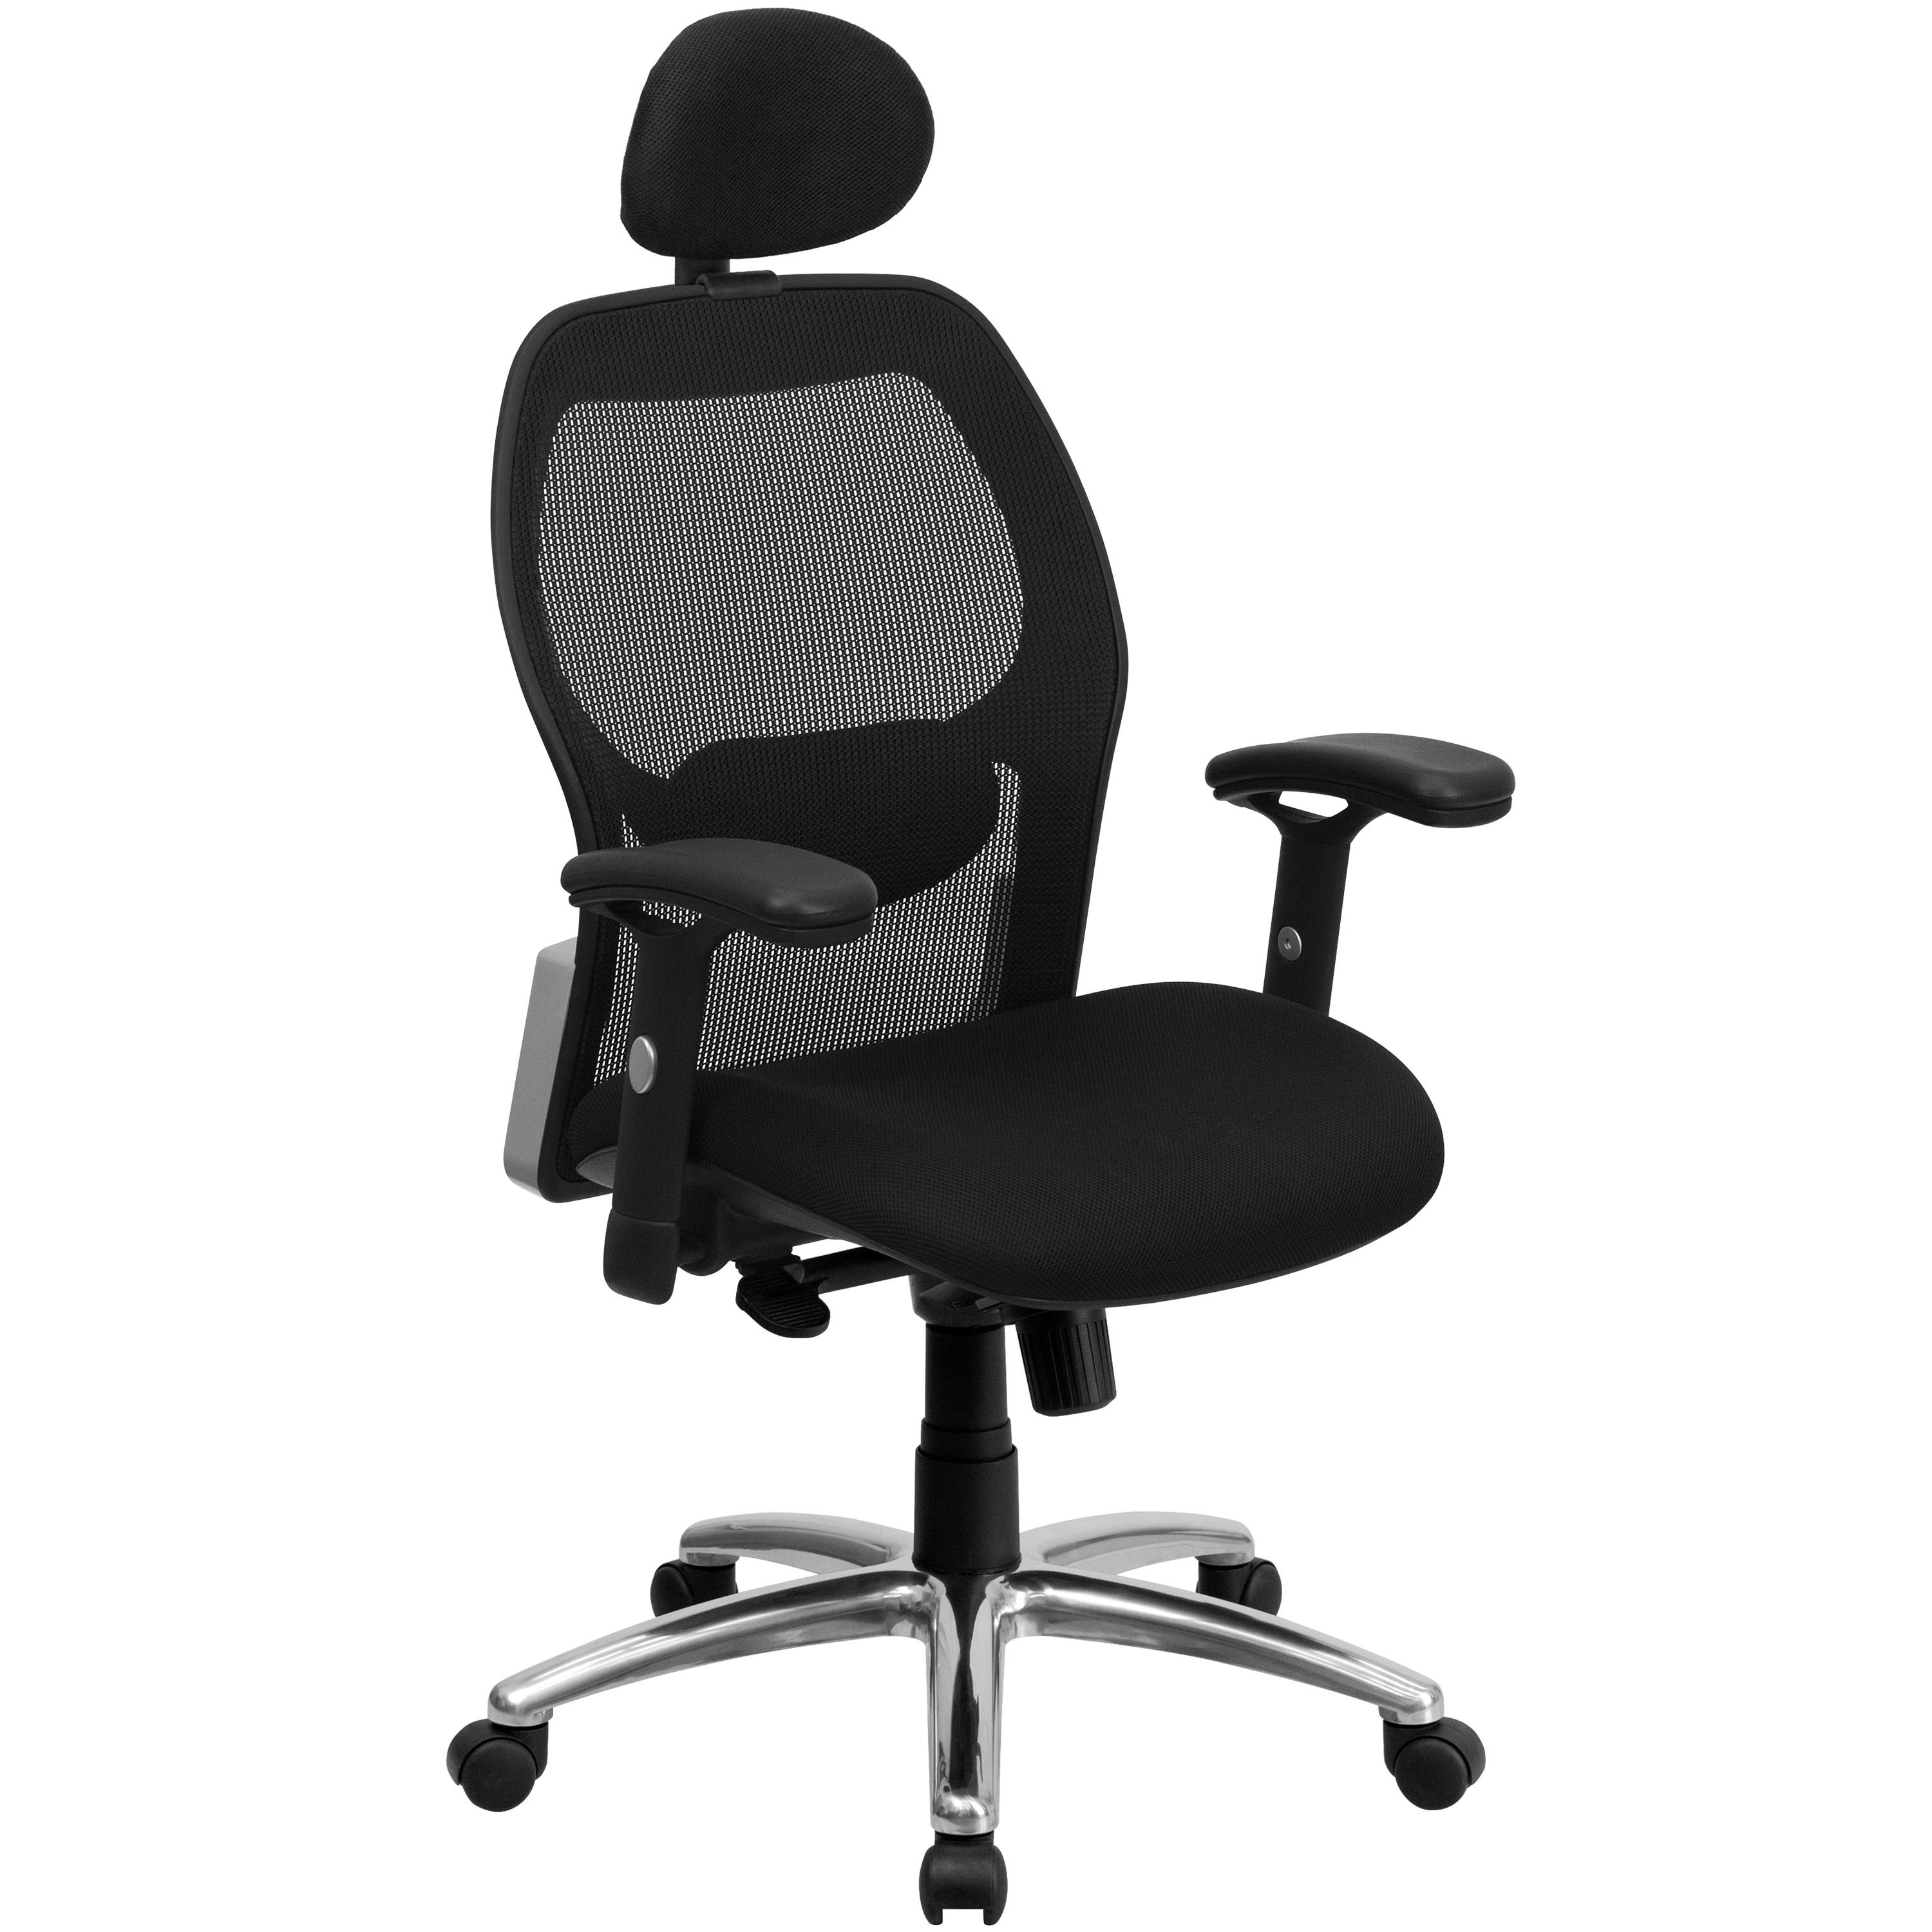 Super Mesh Chair with Headrest, Mesh Back, Knee Tilt Control And Mesh Fabric Seat